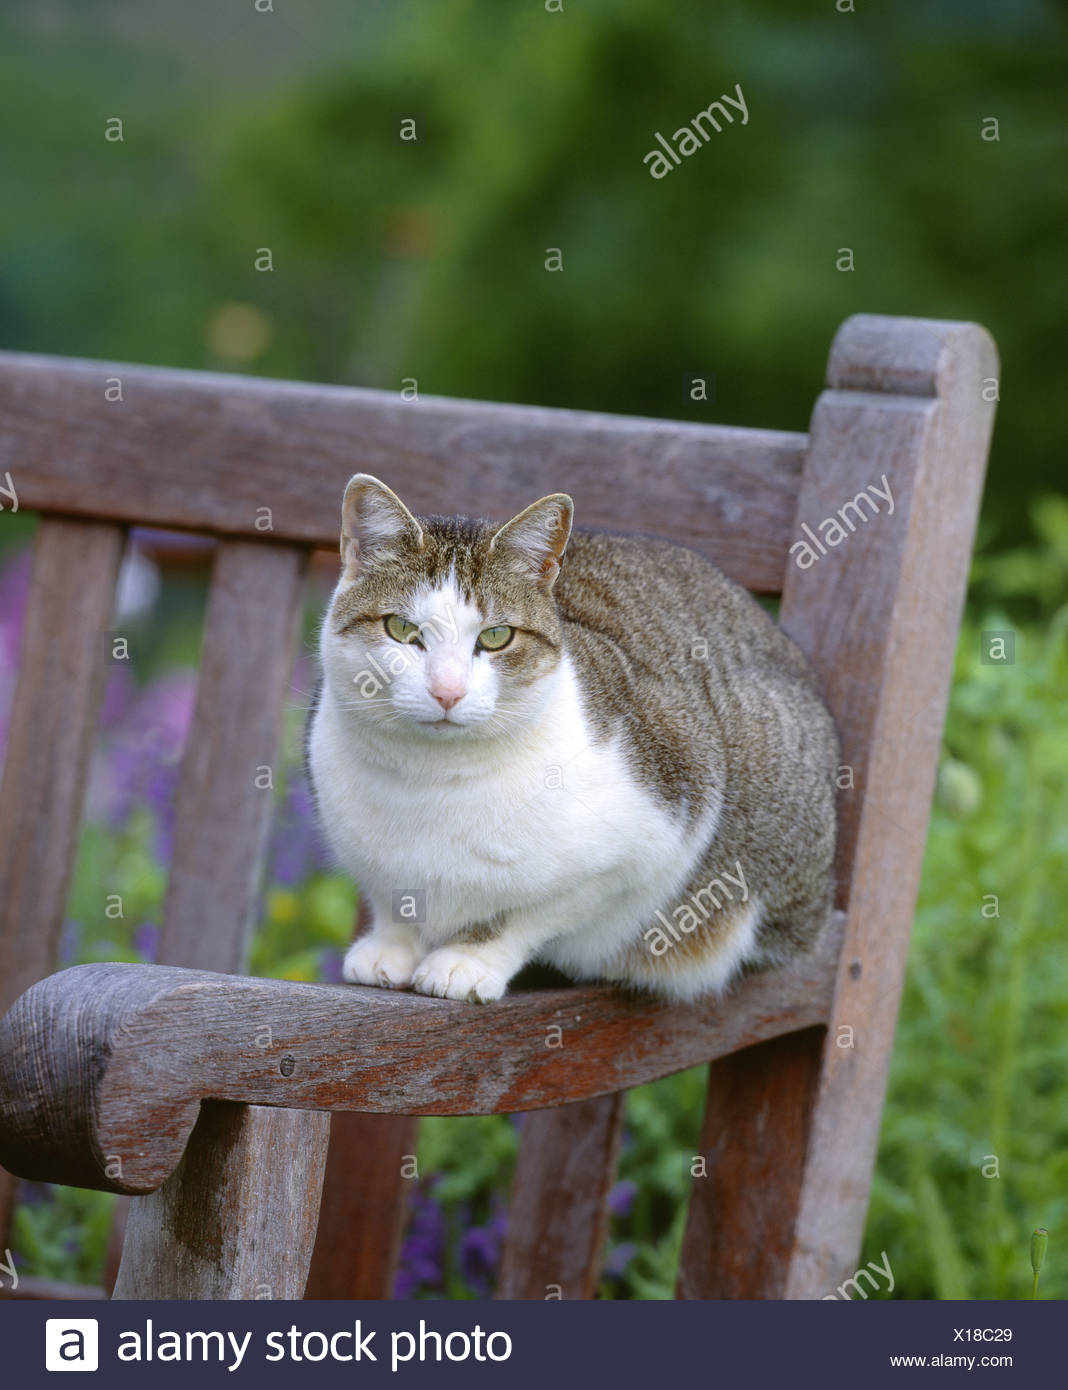 Fine Tabby Cat On Garden Bench Pennsylvania Stock Photo Inzonedesignstudio Interior Chair Design Inzonedesignstudiocom